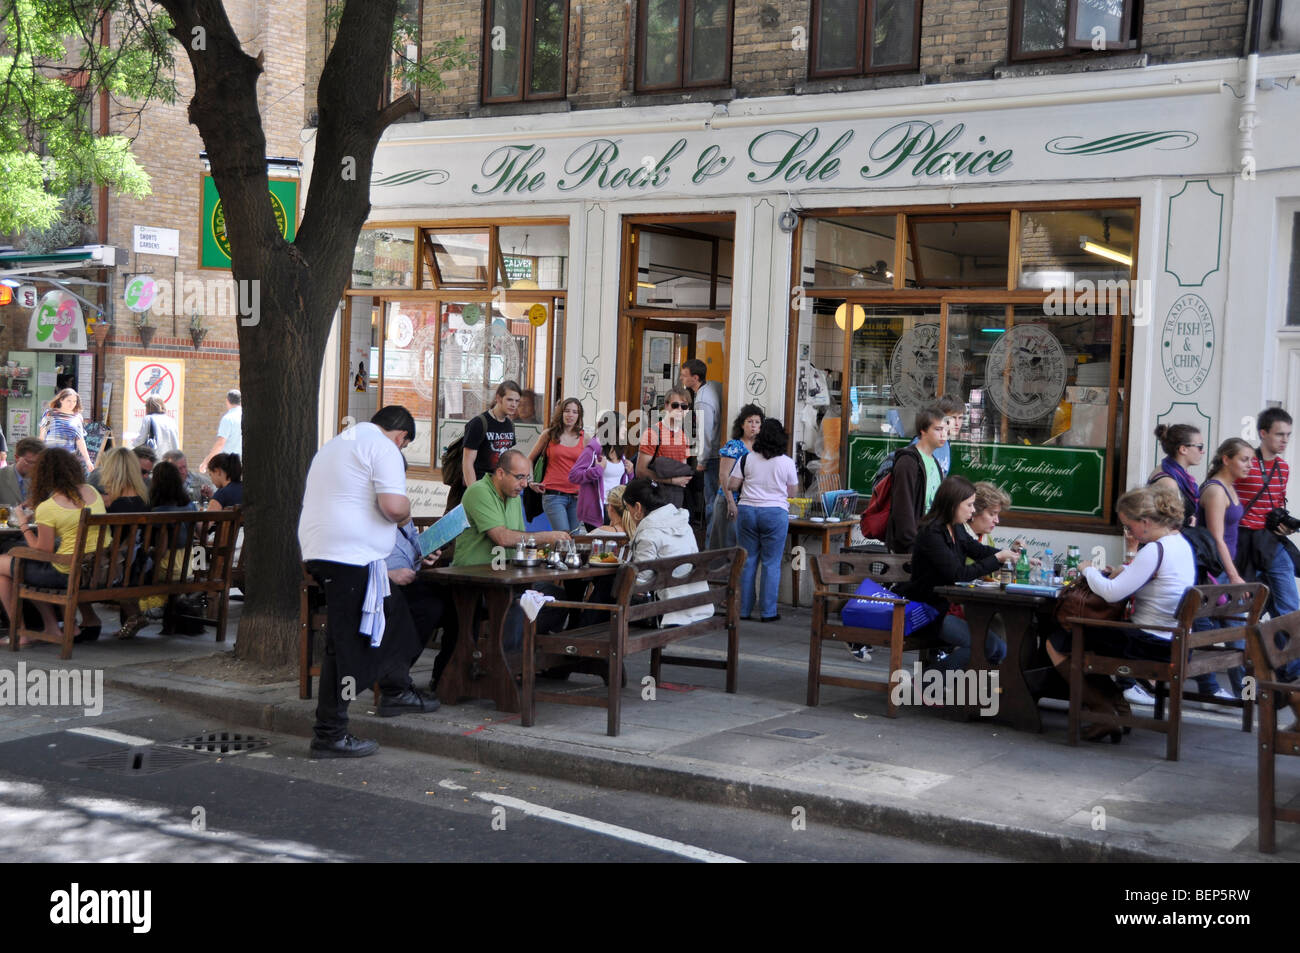 Popular fish and chip restaurant in London's Covent Garden London England - Stock Image